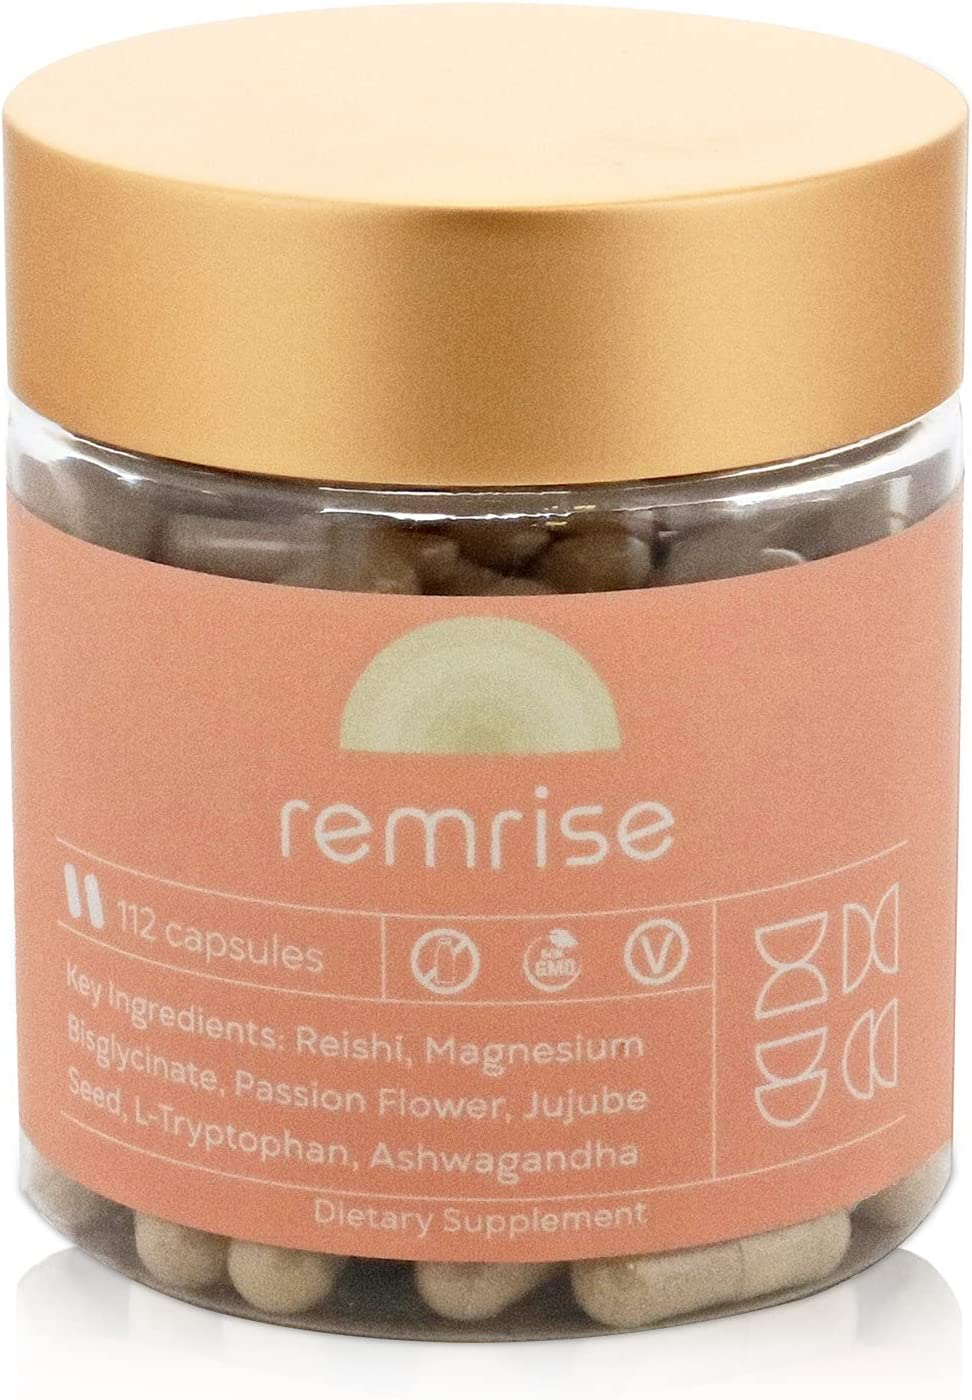 Remrise Sleep Vitamin - Helps Promote Quality Sale SALE% OFF Max 87% OFF and